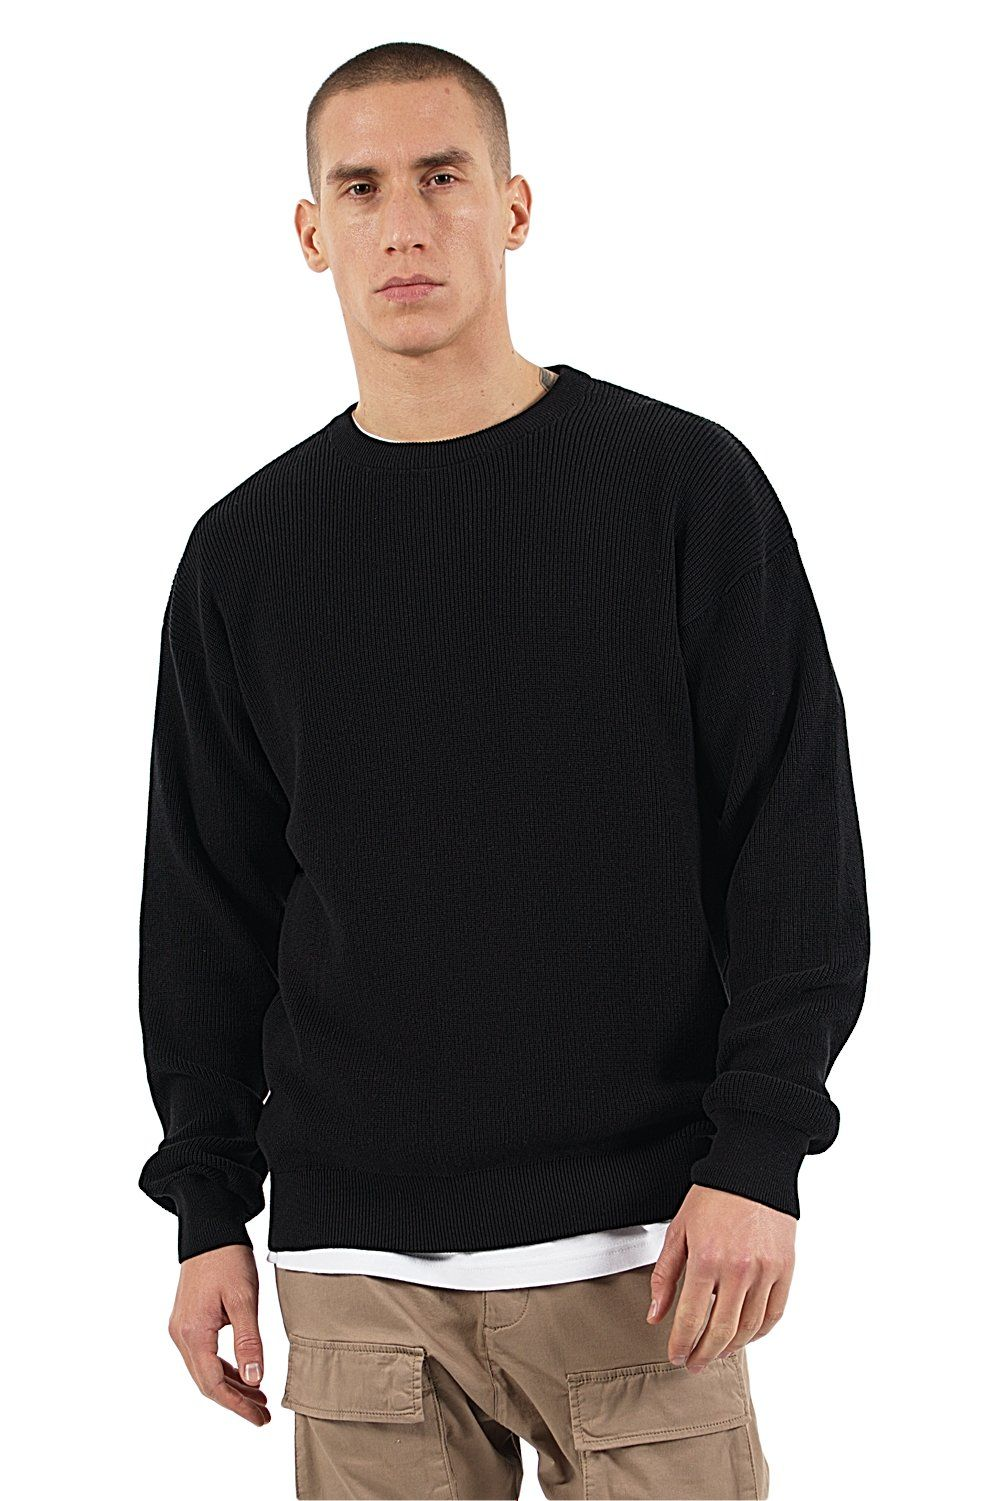 Milan Oversize Knit Sweater Black SWEATER PEGADOR